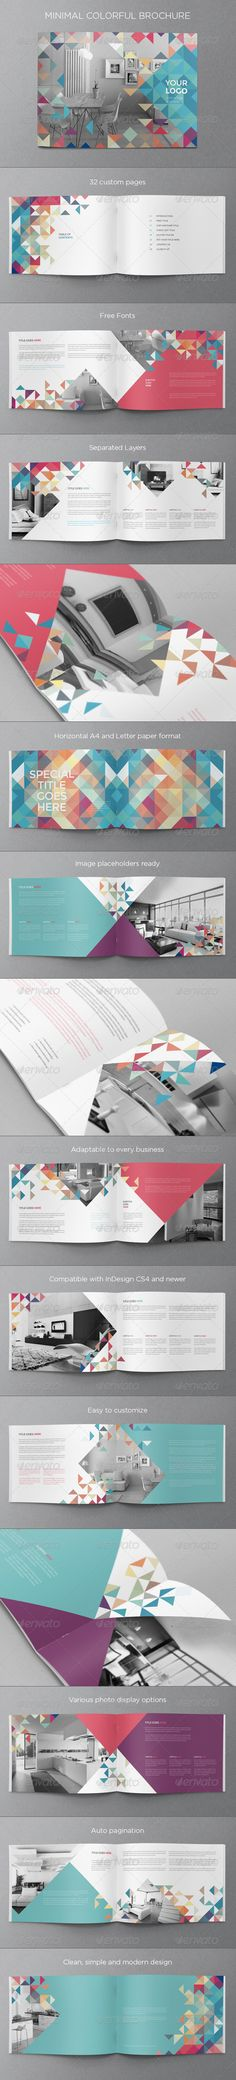 Minimal Colorful Brochure - Brochures Print Templates